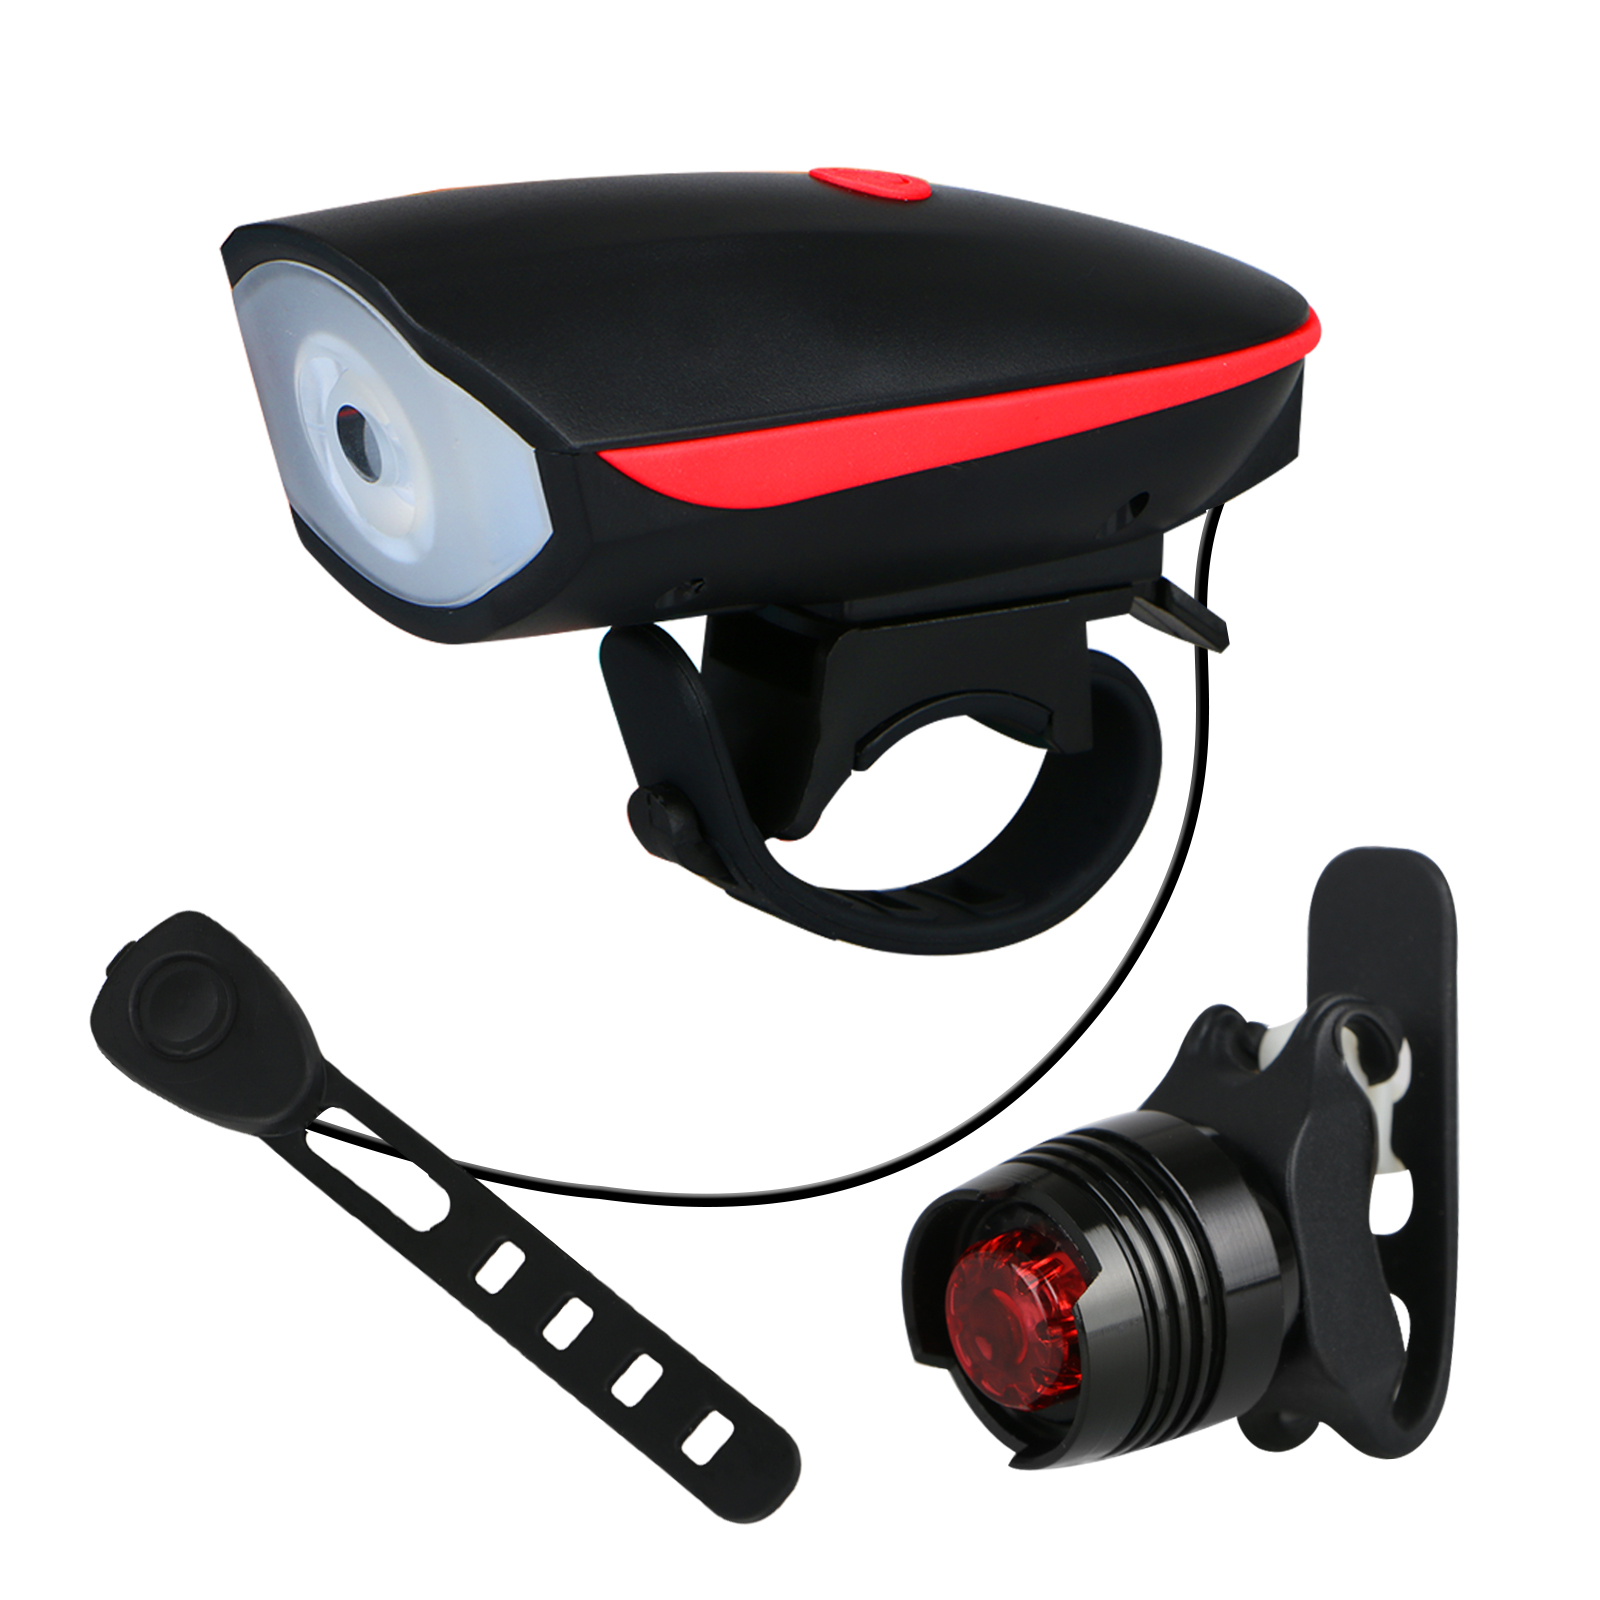 TSV Super Bright Bicycle Light Set - USB Rechargeable Bike Headlight Front Lamp and LED Red Taillight for Cycling Safety (Battery Included)